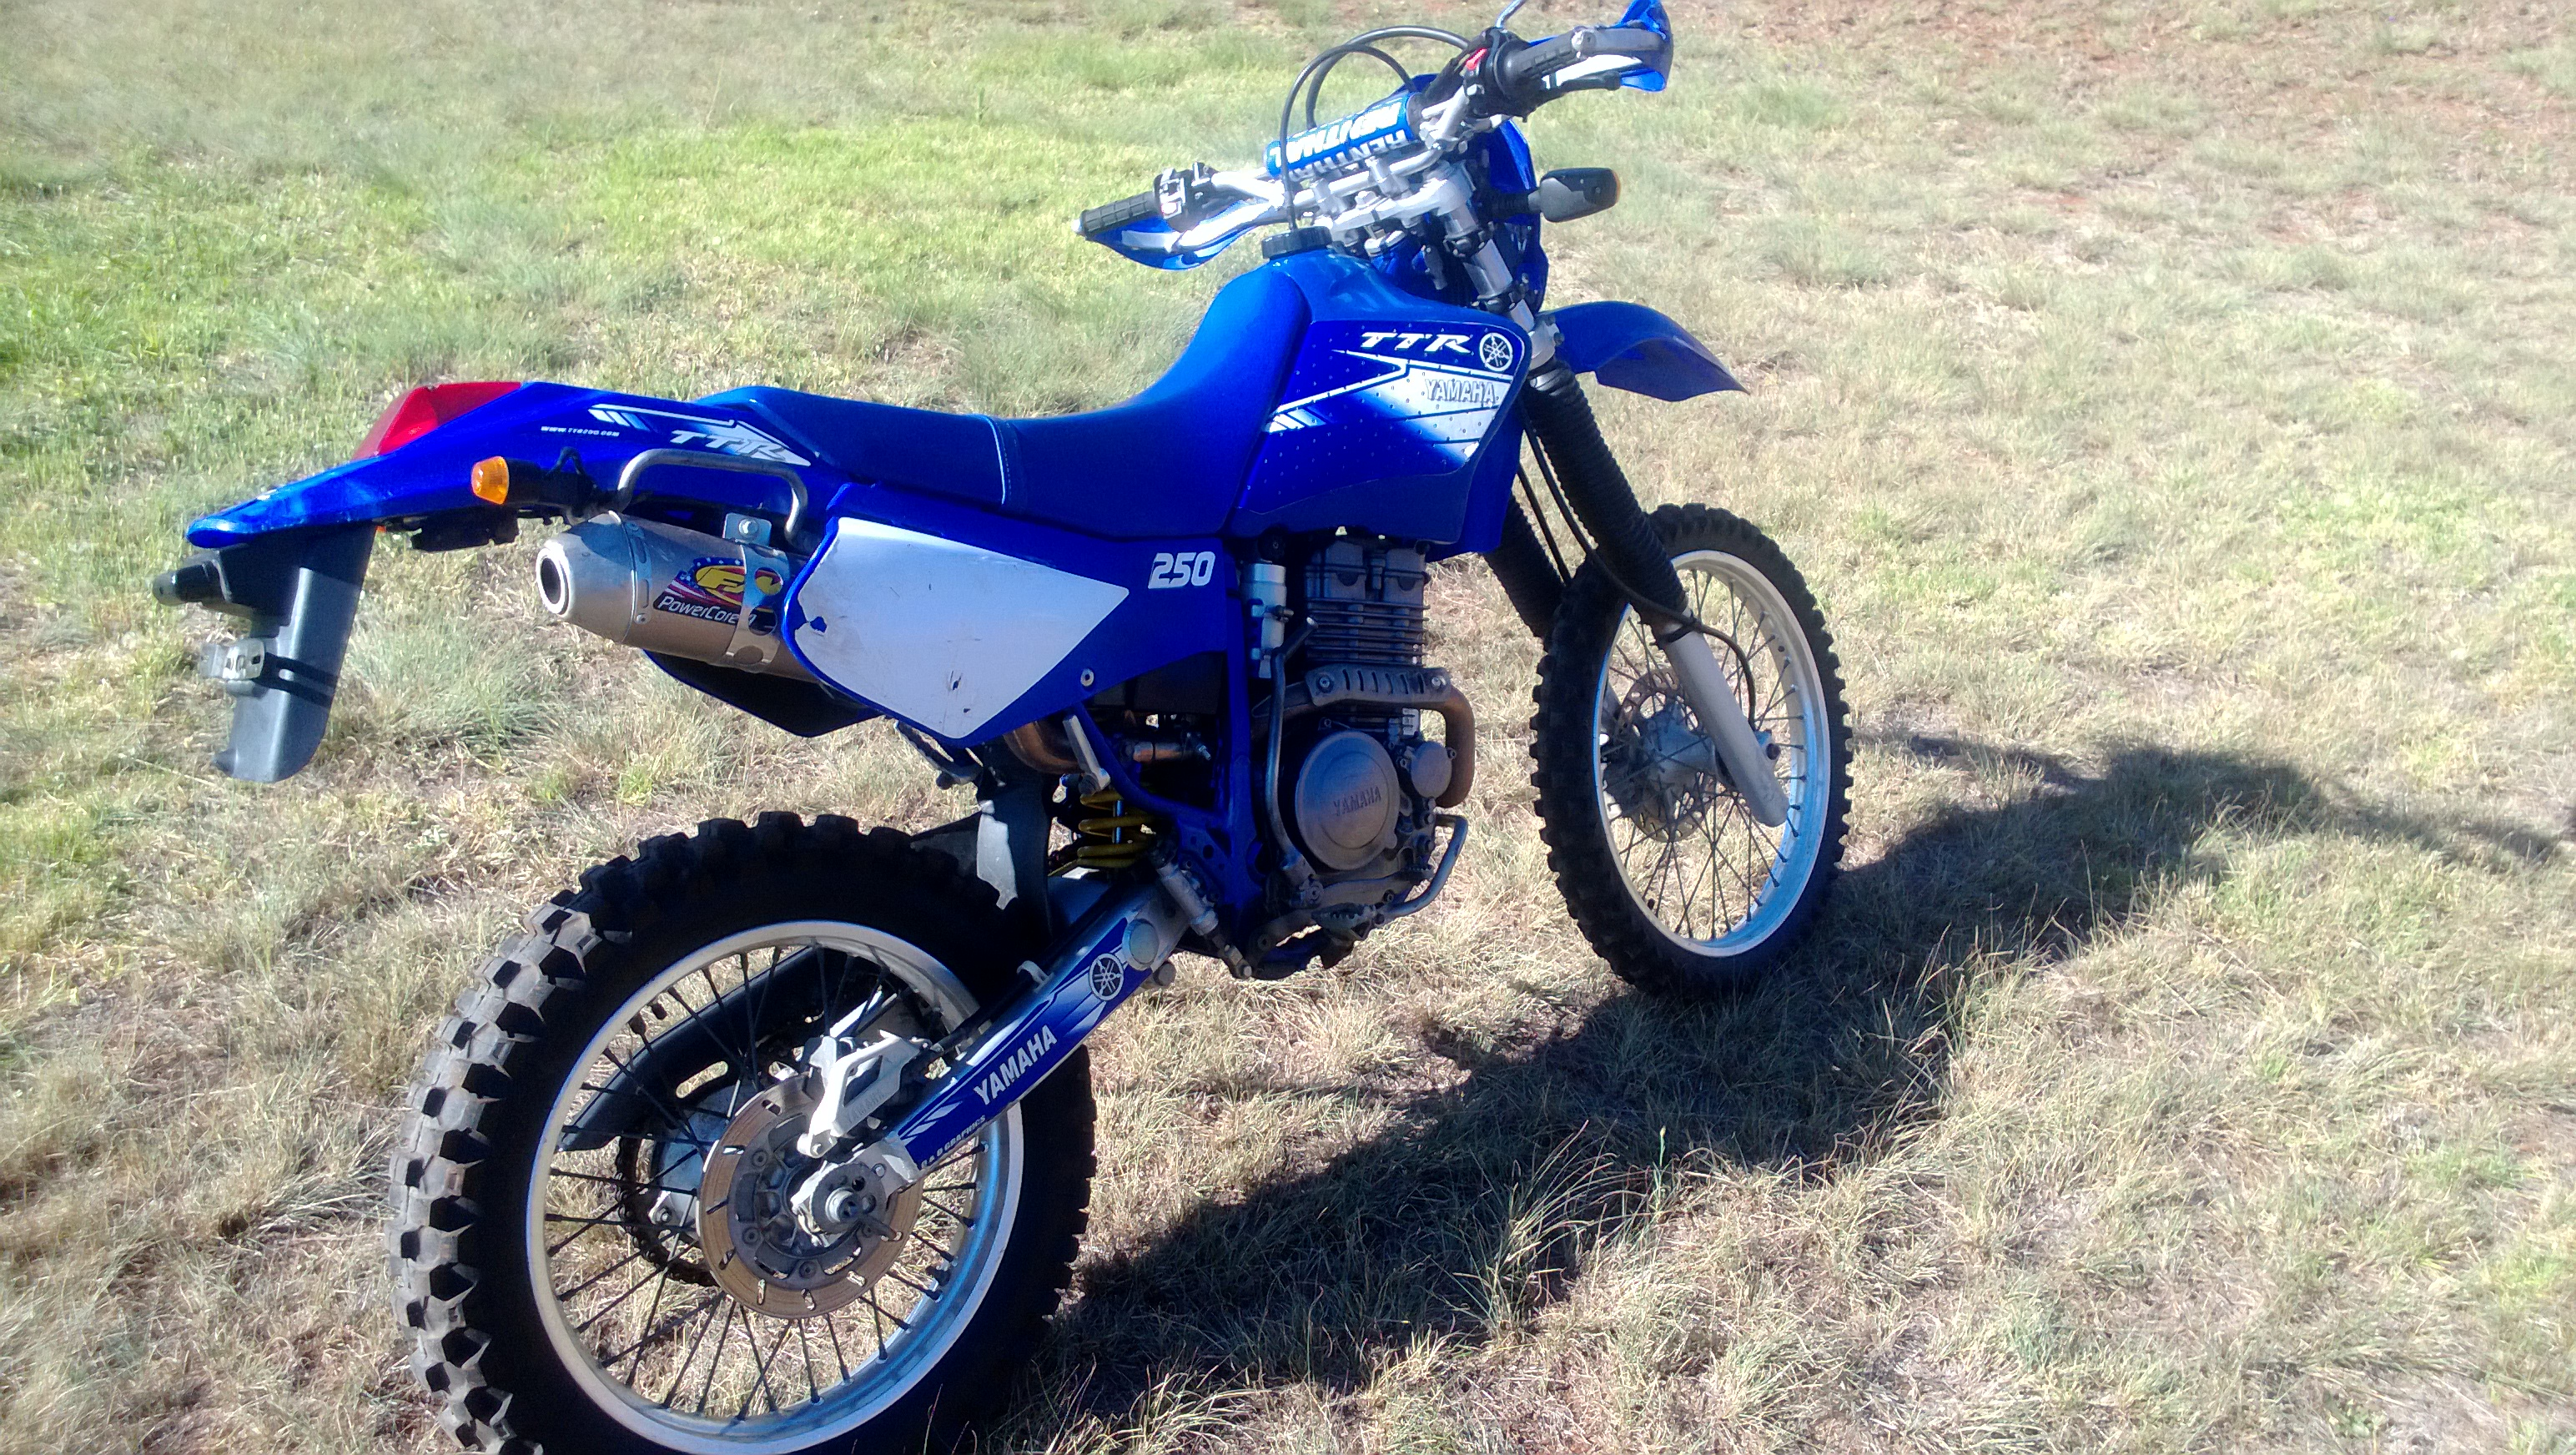 2002 yamaha r 250 for sale qld sunshine coast for Yamaha ttr 250